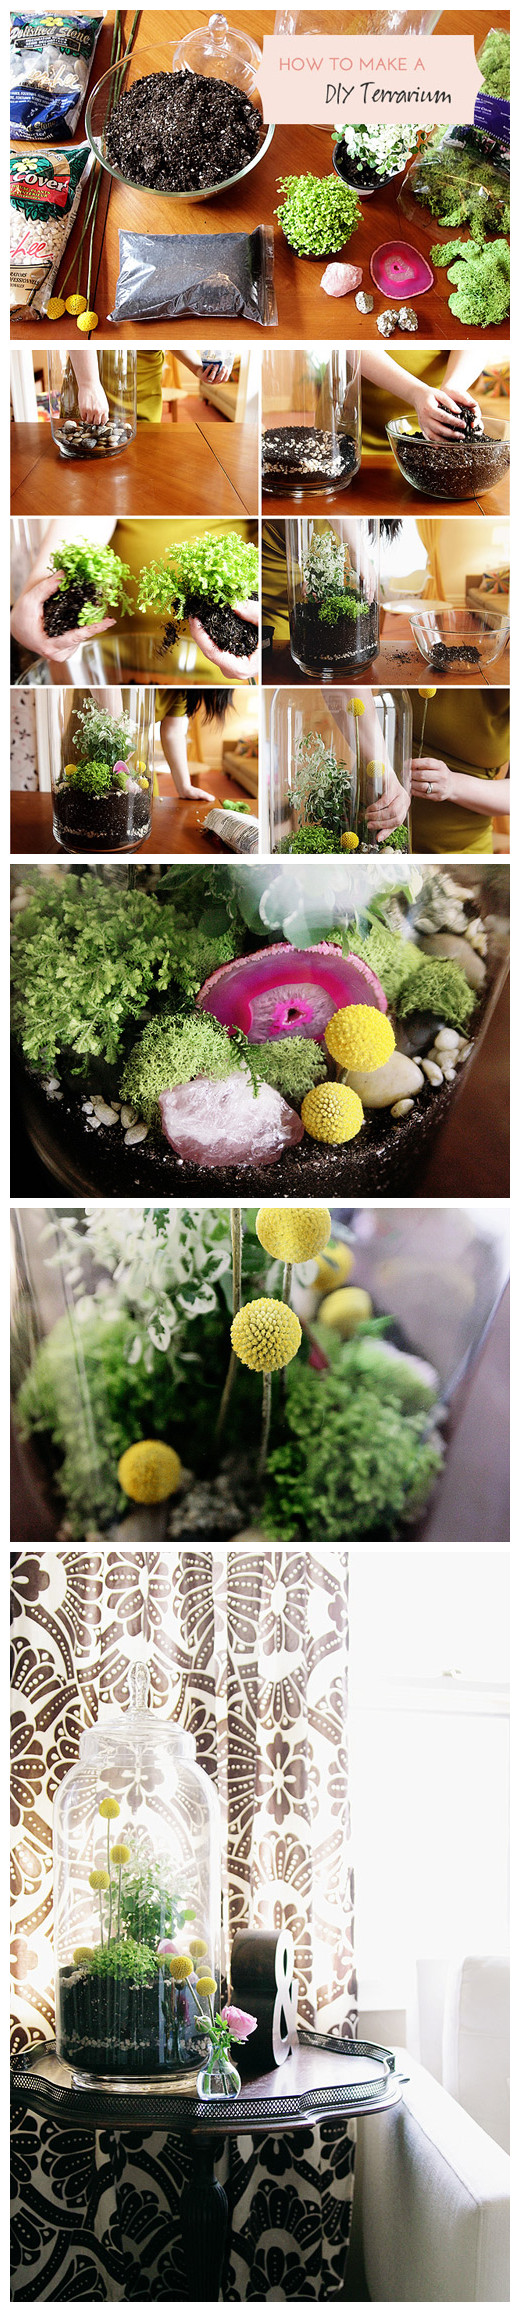 Not just plants.  The DIY home decorative potted shape Terrarium is recently very popular home decorating, transparent glassware, healthy soil, green plants, adding some exquisite stone, just like an indoor forest, make it difficult to resist.  Manual design diy Terrarium become a label of plant lovers.